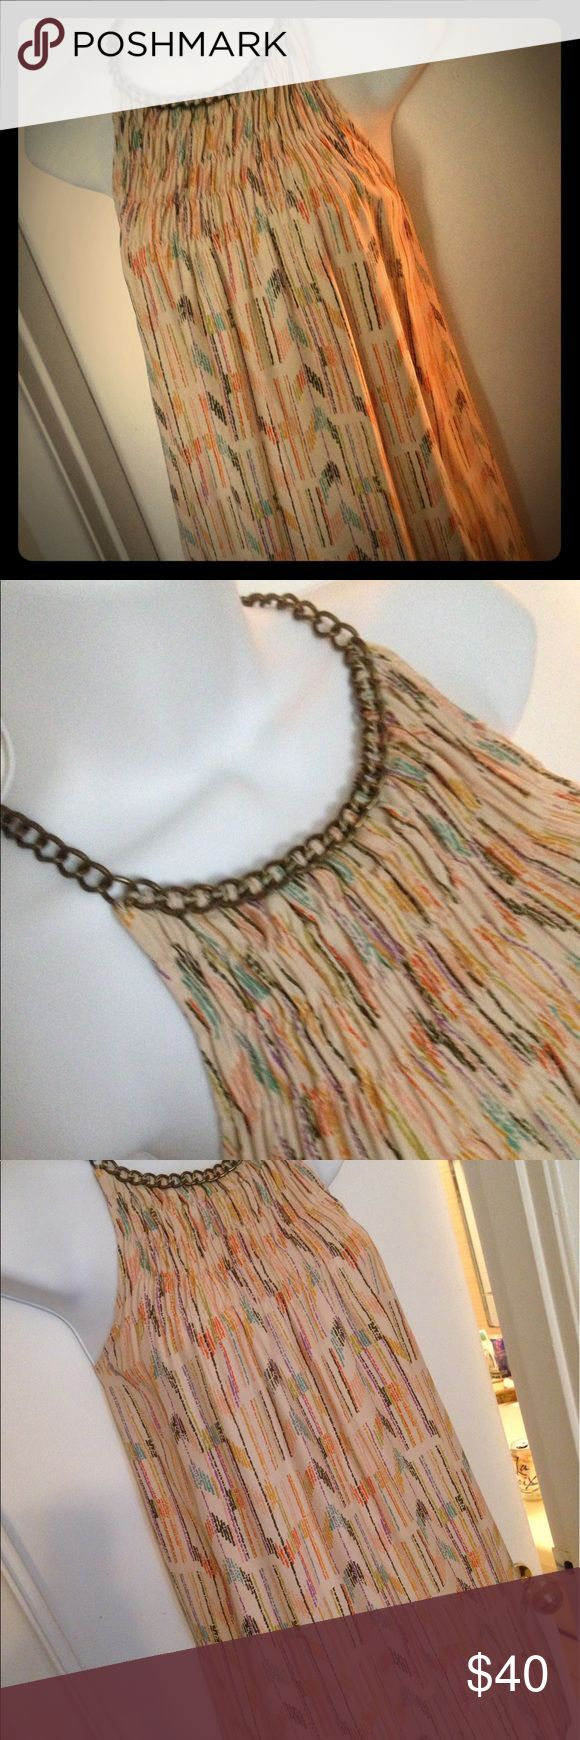 VEUC Parker Chain Collar Chevron Print Silk Tank Chain neckline silk Parker tank. Can be worn loose and flowing or belt. Great earthy colors and chevron-like pattern. Wore 1x. Parker Tops Blouses